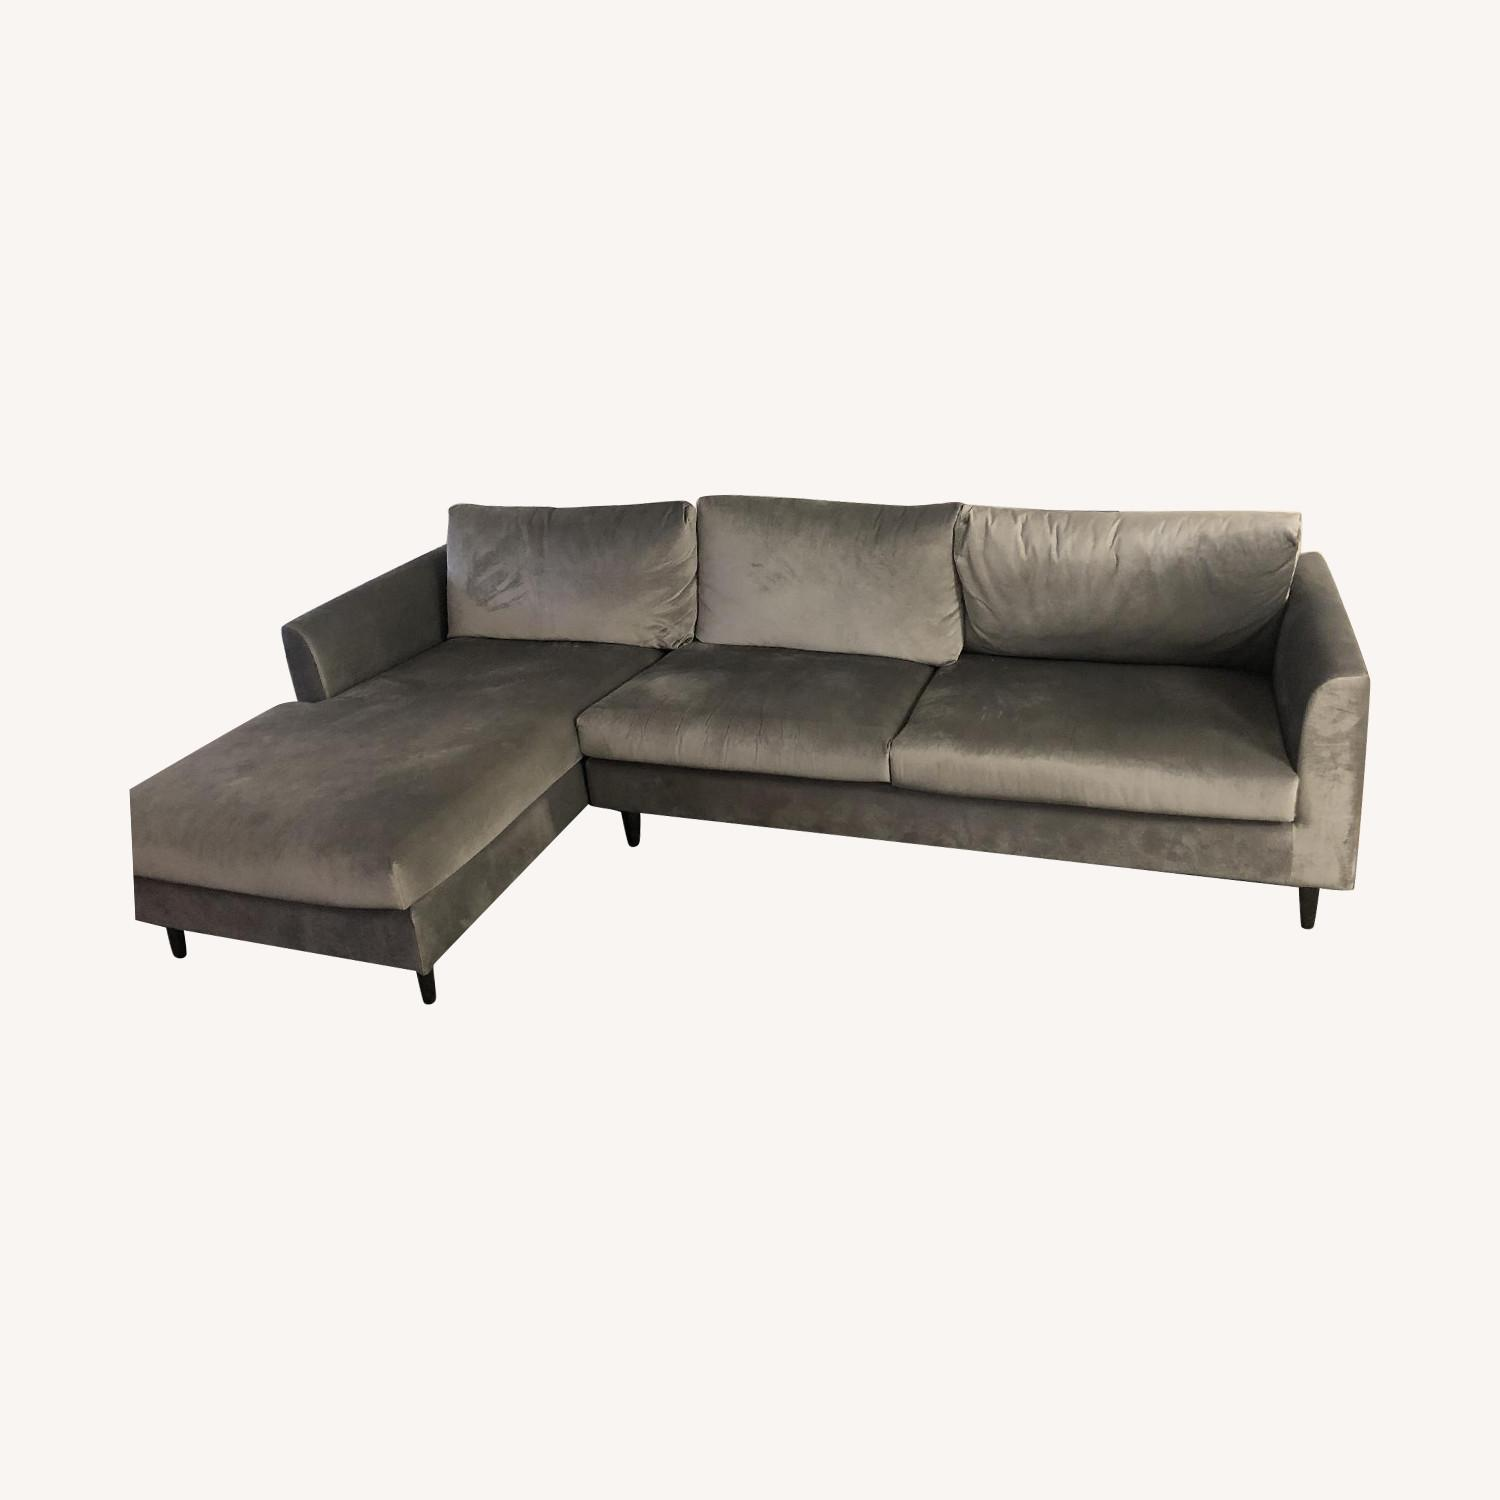 Interior Define Owens Sectional Sofa w/ Left Chaise - image-0